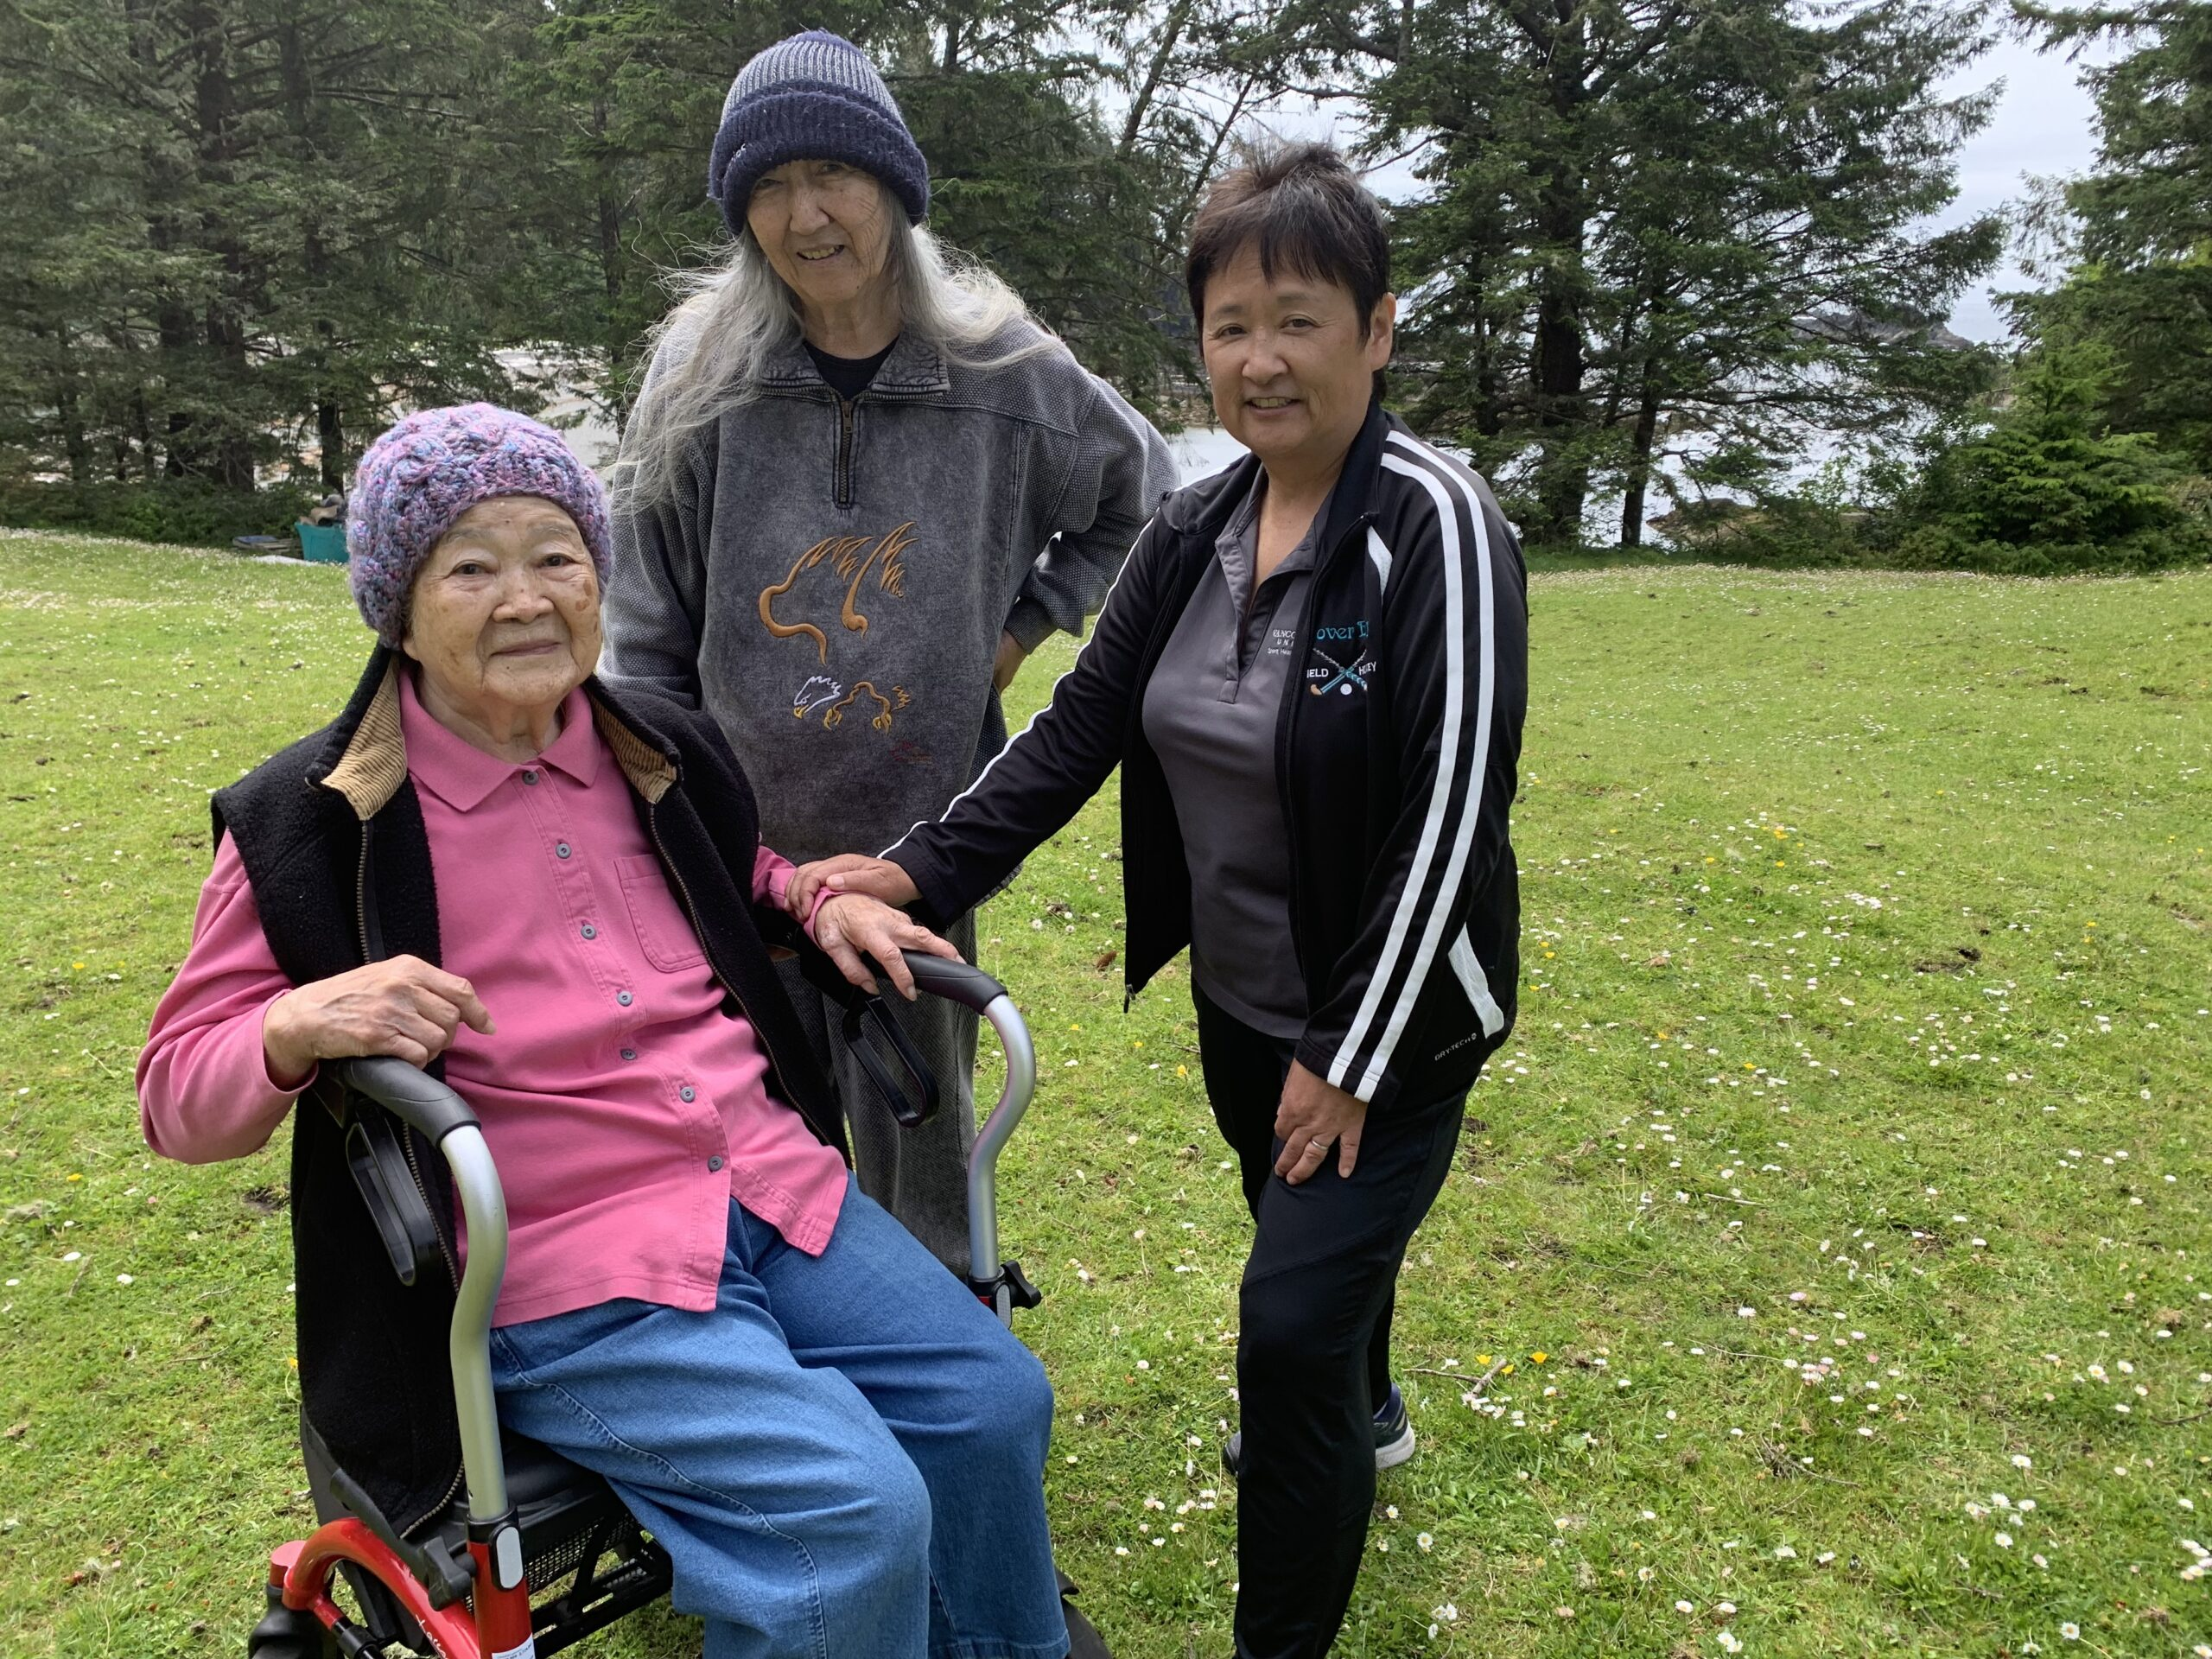 Pictured L-R Mary Kimoto and Ellen Kimoto Crowe-Swords on their property in Ucluelet, B.C. with Project Manager Eiko Eby. Photo by Susanne Tabata